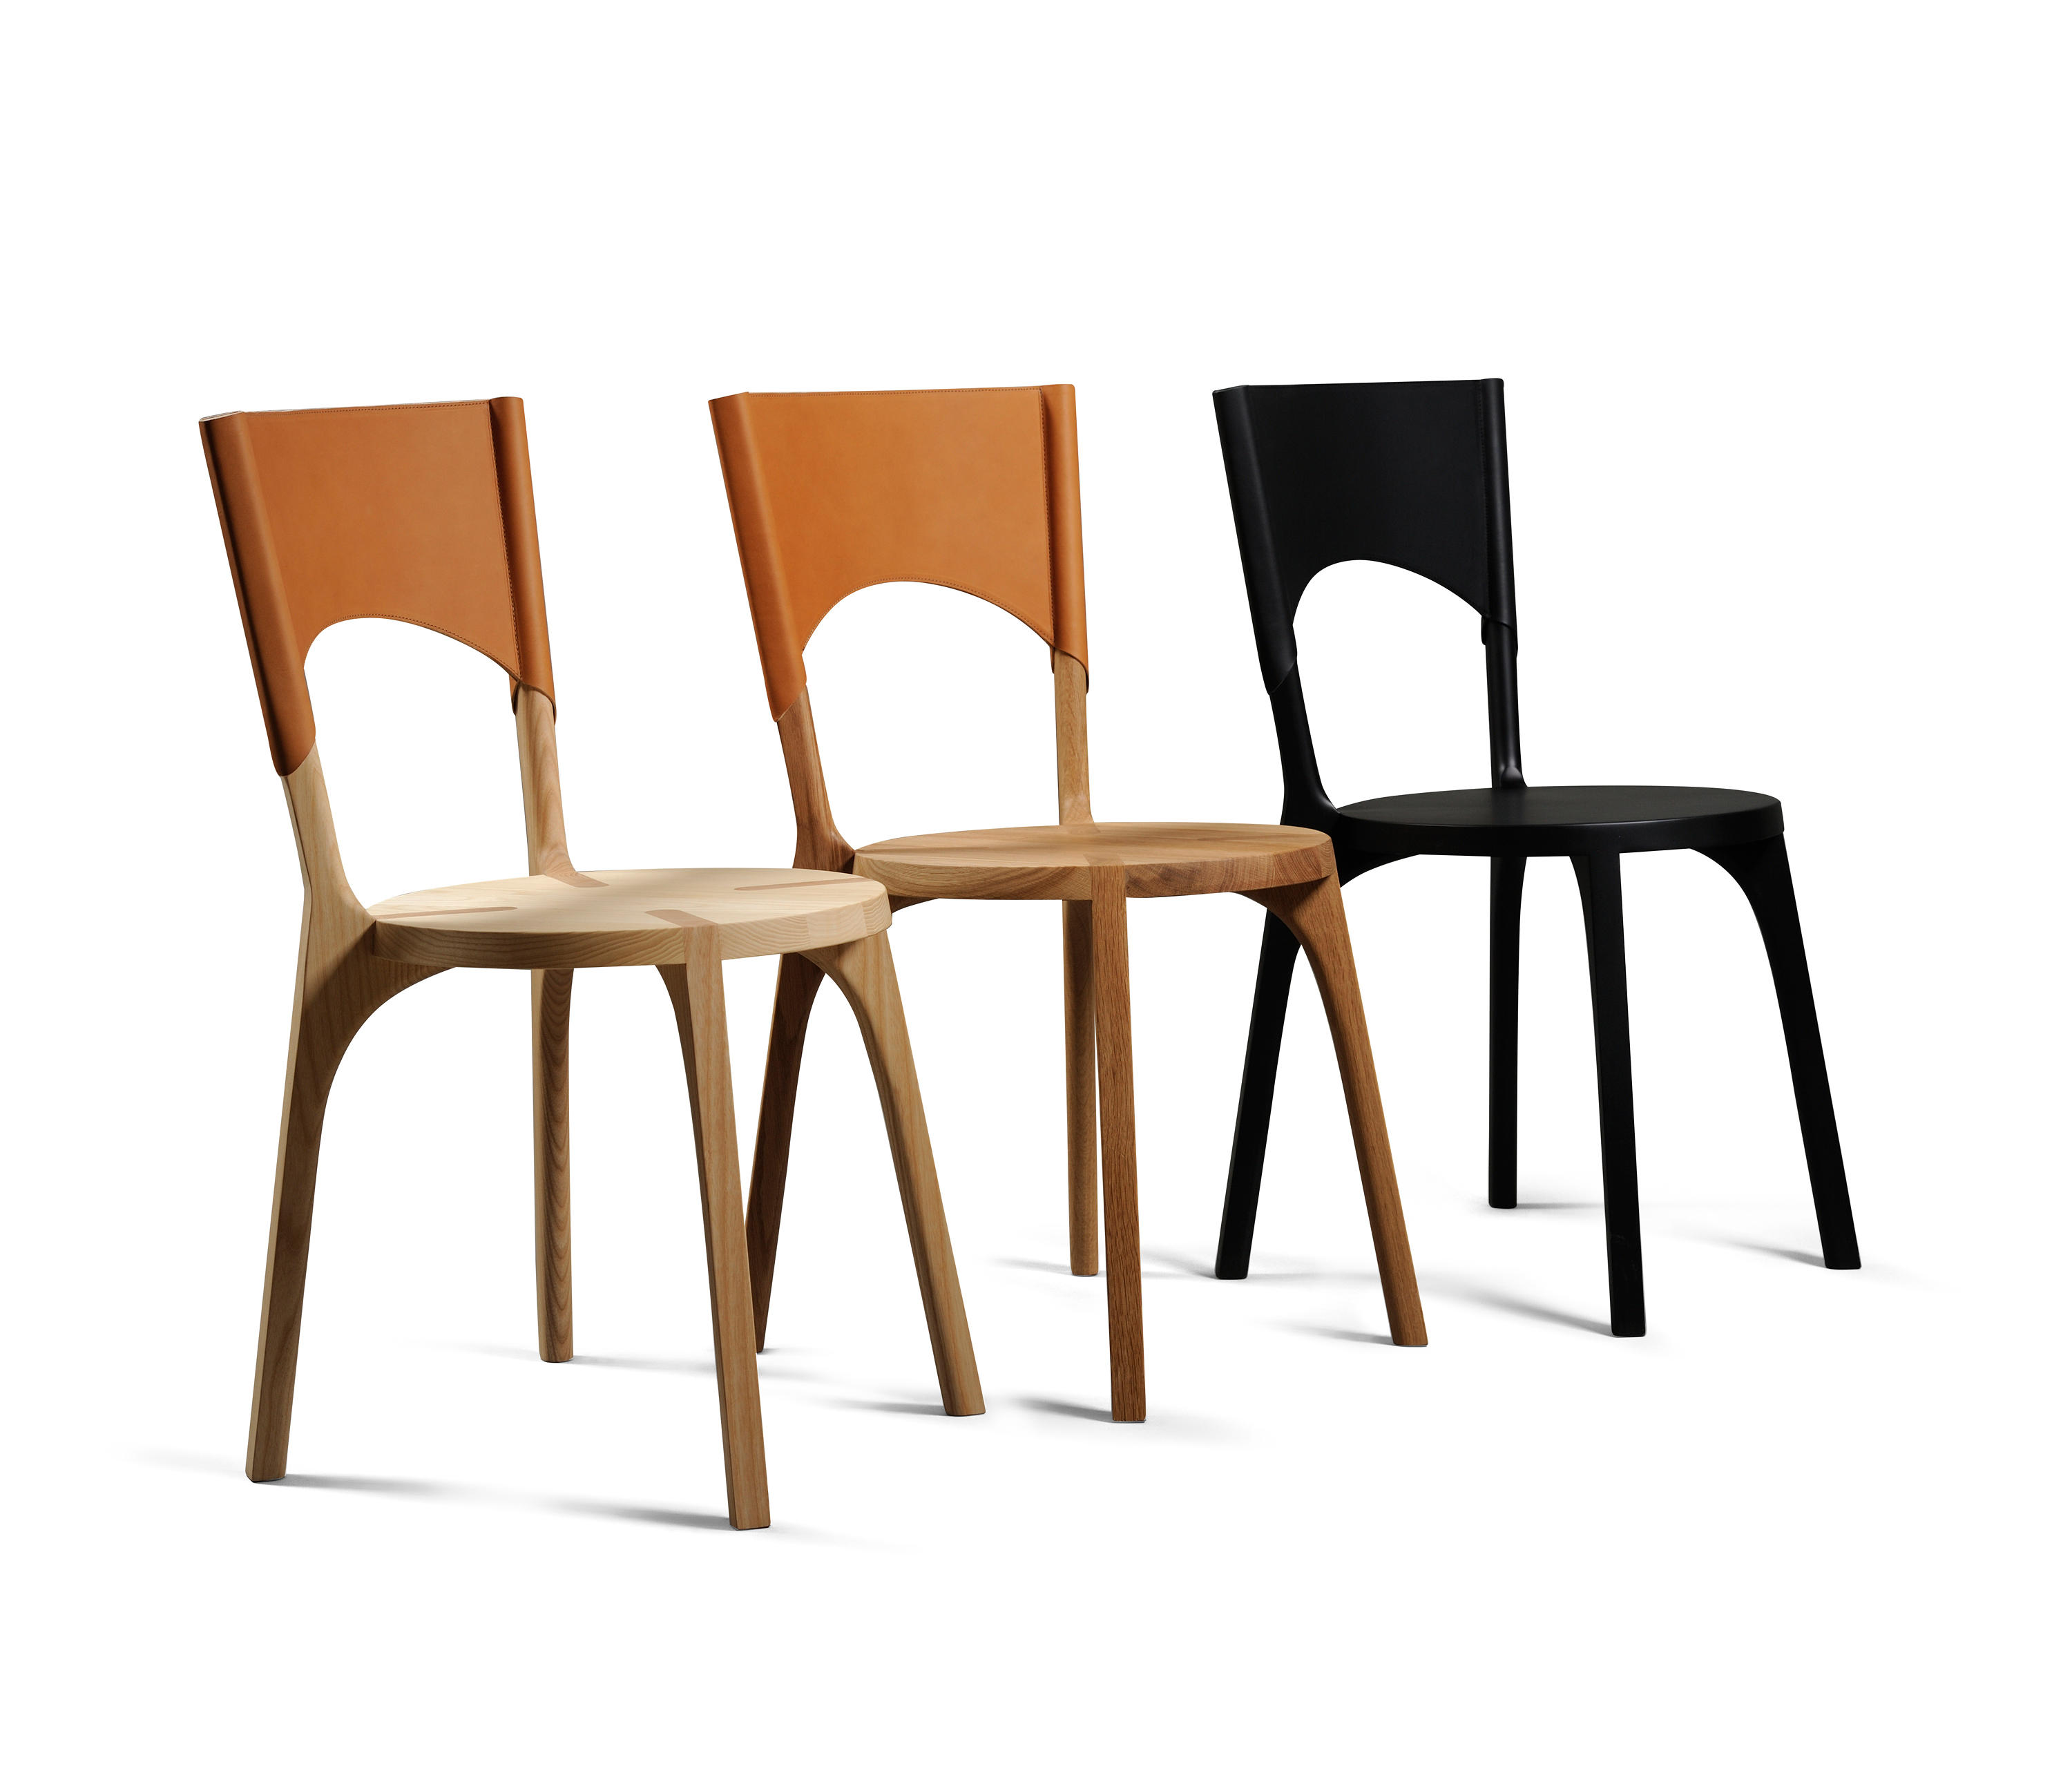 Awe Inspiring Tattoo Bar Stool Plain Architonic Gmtry Best Dining Table And Chair Ideas Images Gmtryco